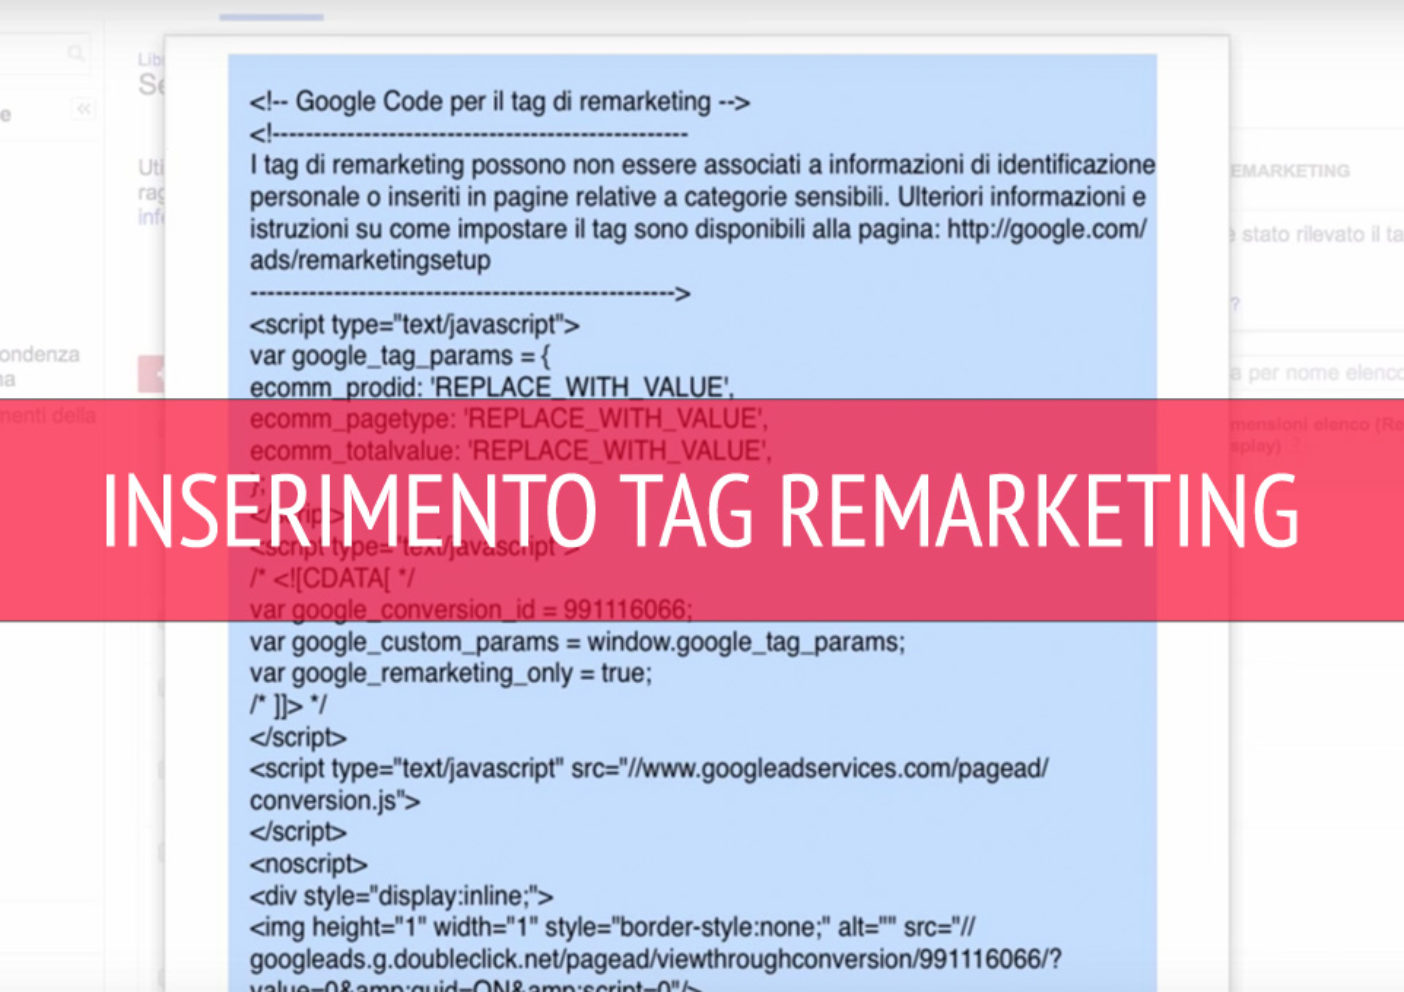 tag remarketing, Tag Remarketing di Google ADS, inserimento e codifica